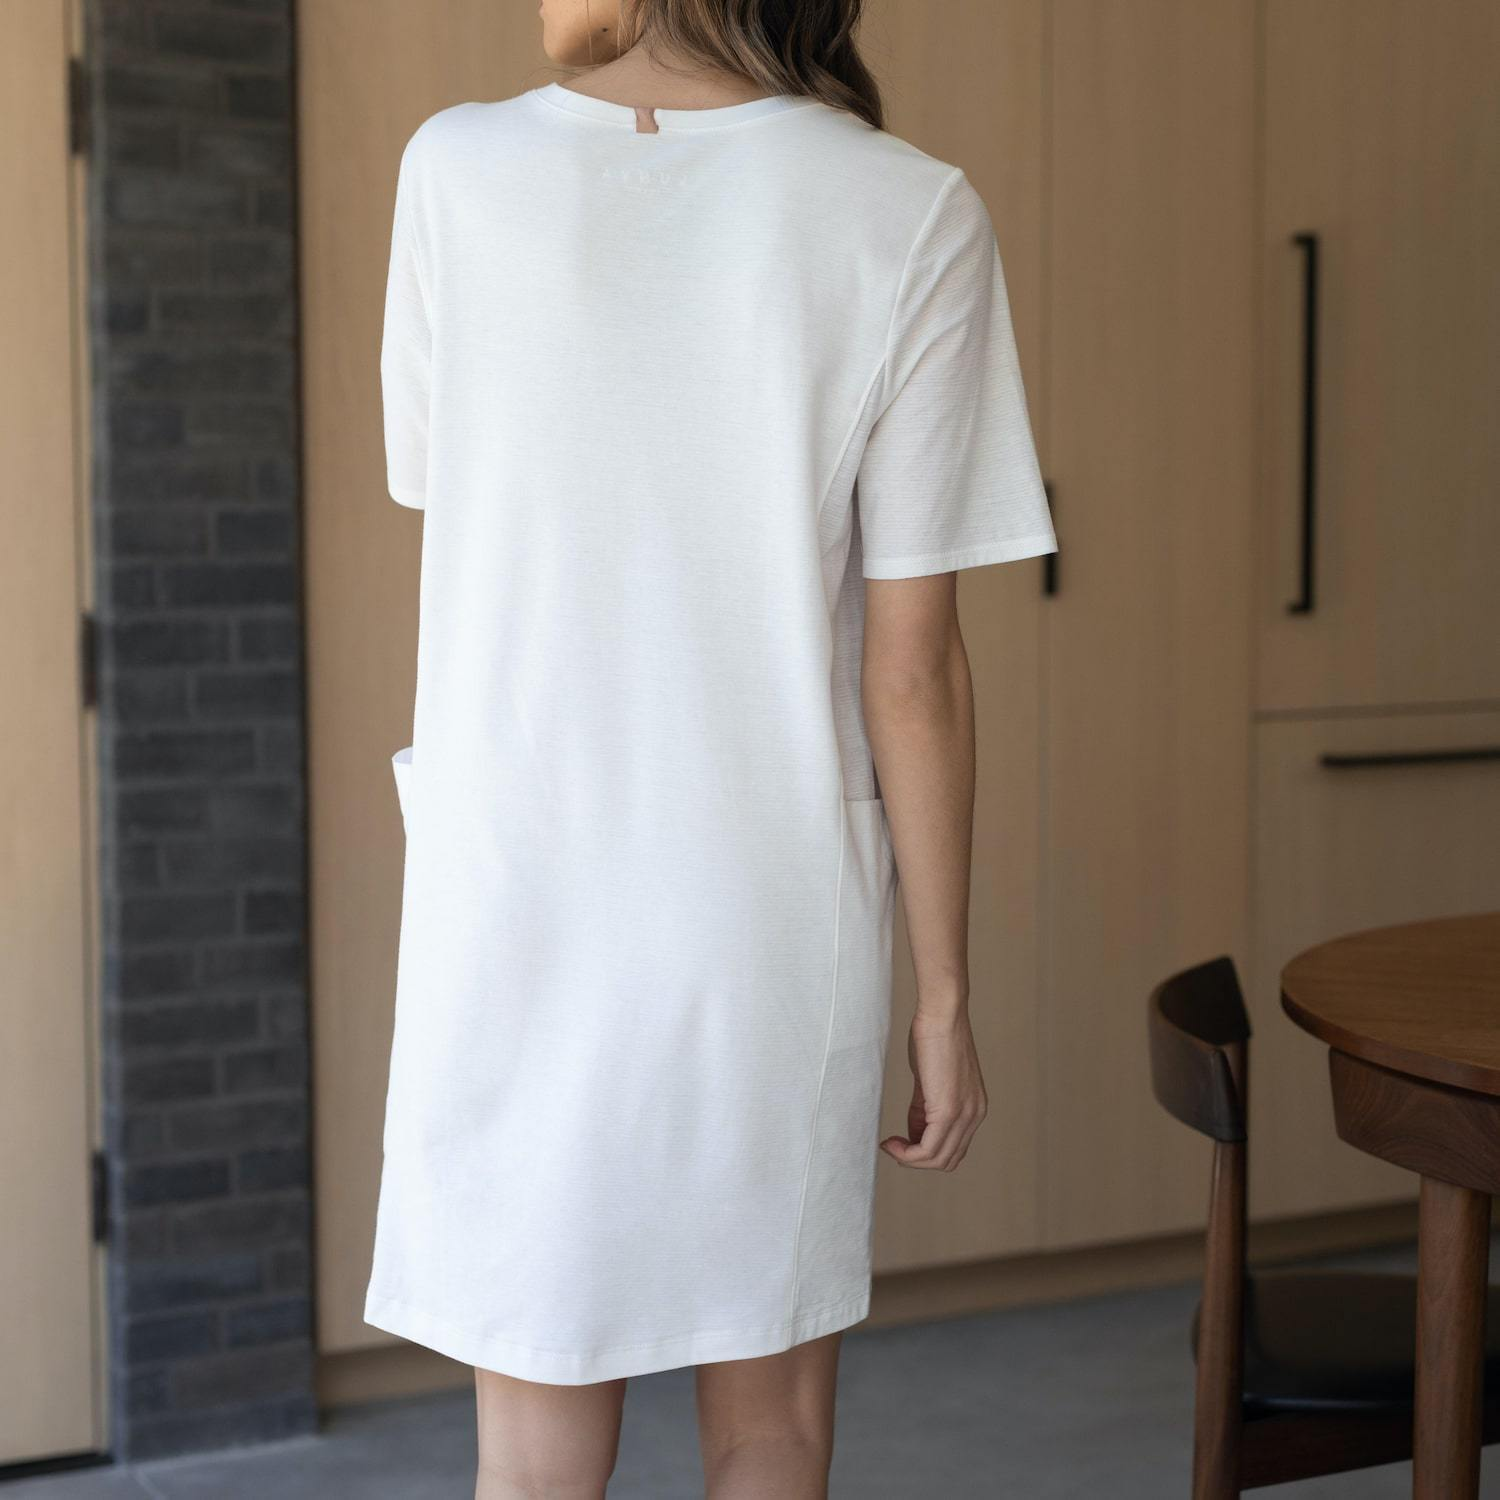 Lunya Sleepwear Cool Paneled Short Dress - #White